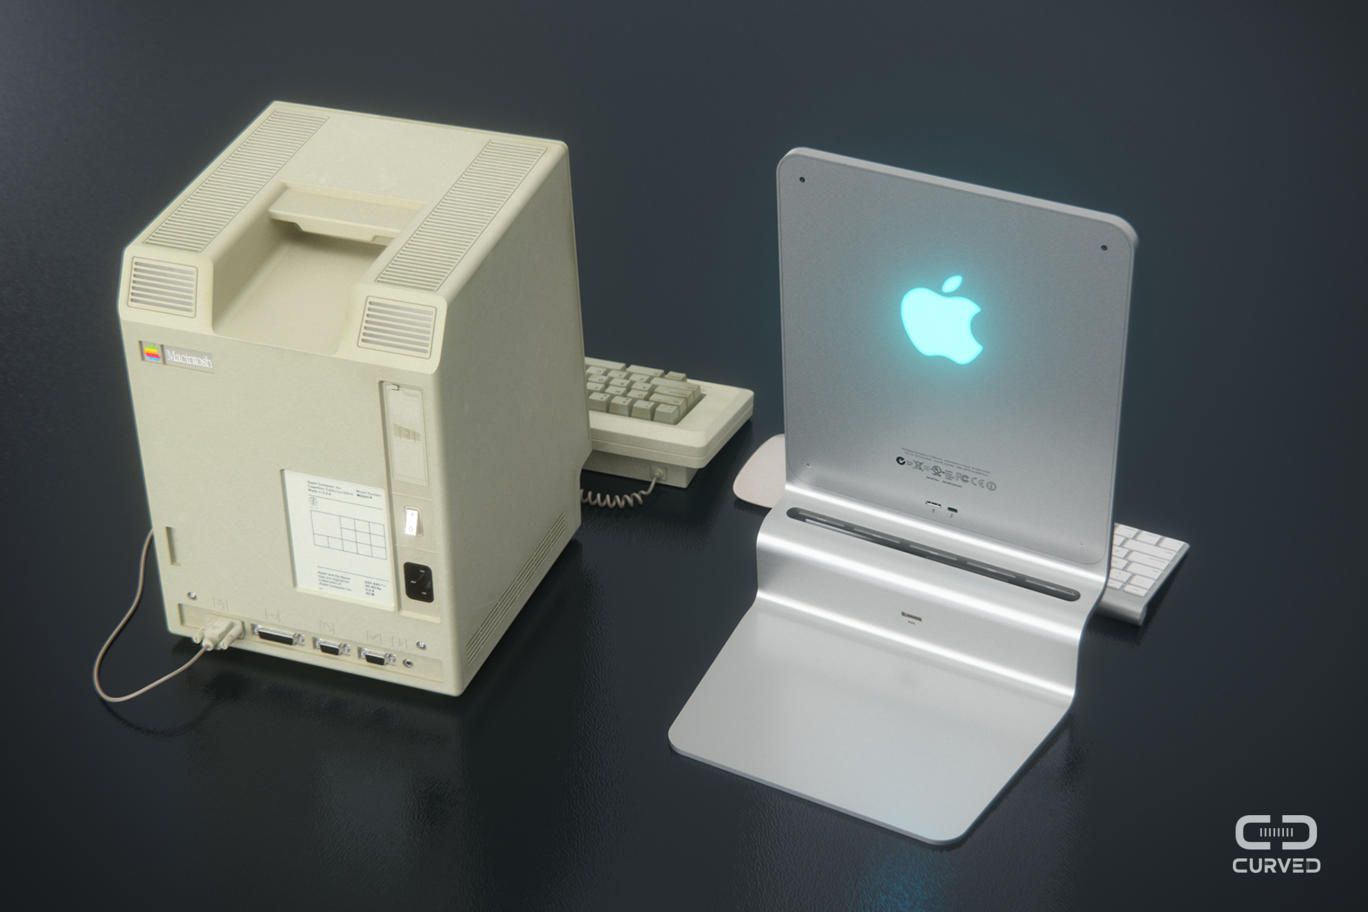 Back To The Roots Of The First Macintosh With A Fresh